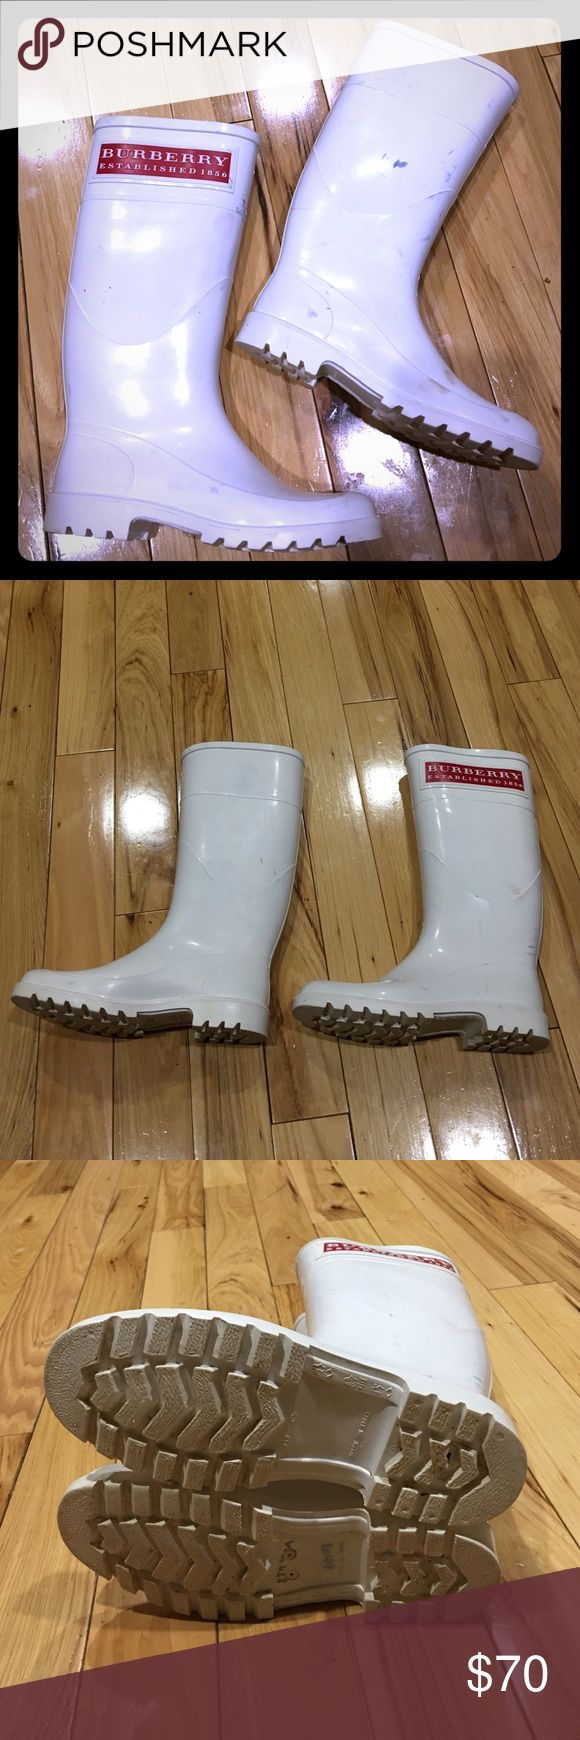 Burberry white rain boots size 6 women's Burberry rain boots size 6 women's white has some scuffs and or scratches as seen in photos very comfortable awesome looking boots non-smoking home fast delivery at an excellent price get them today Burberry Shoes Winter & Rain Boots